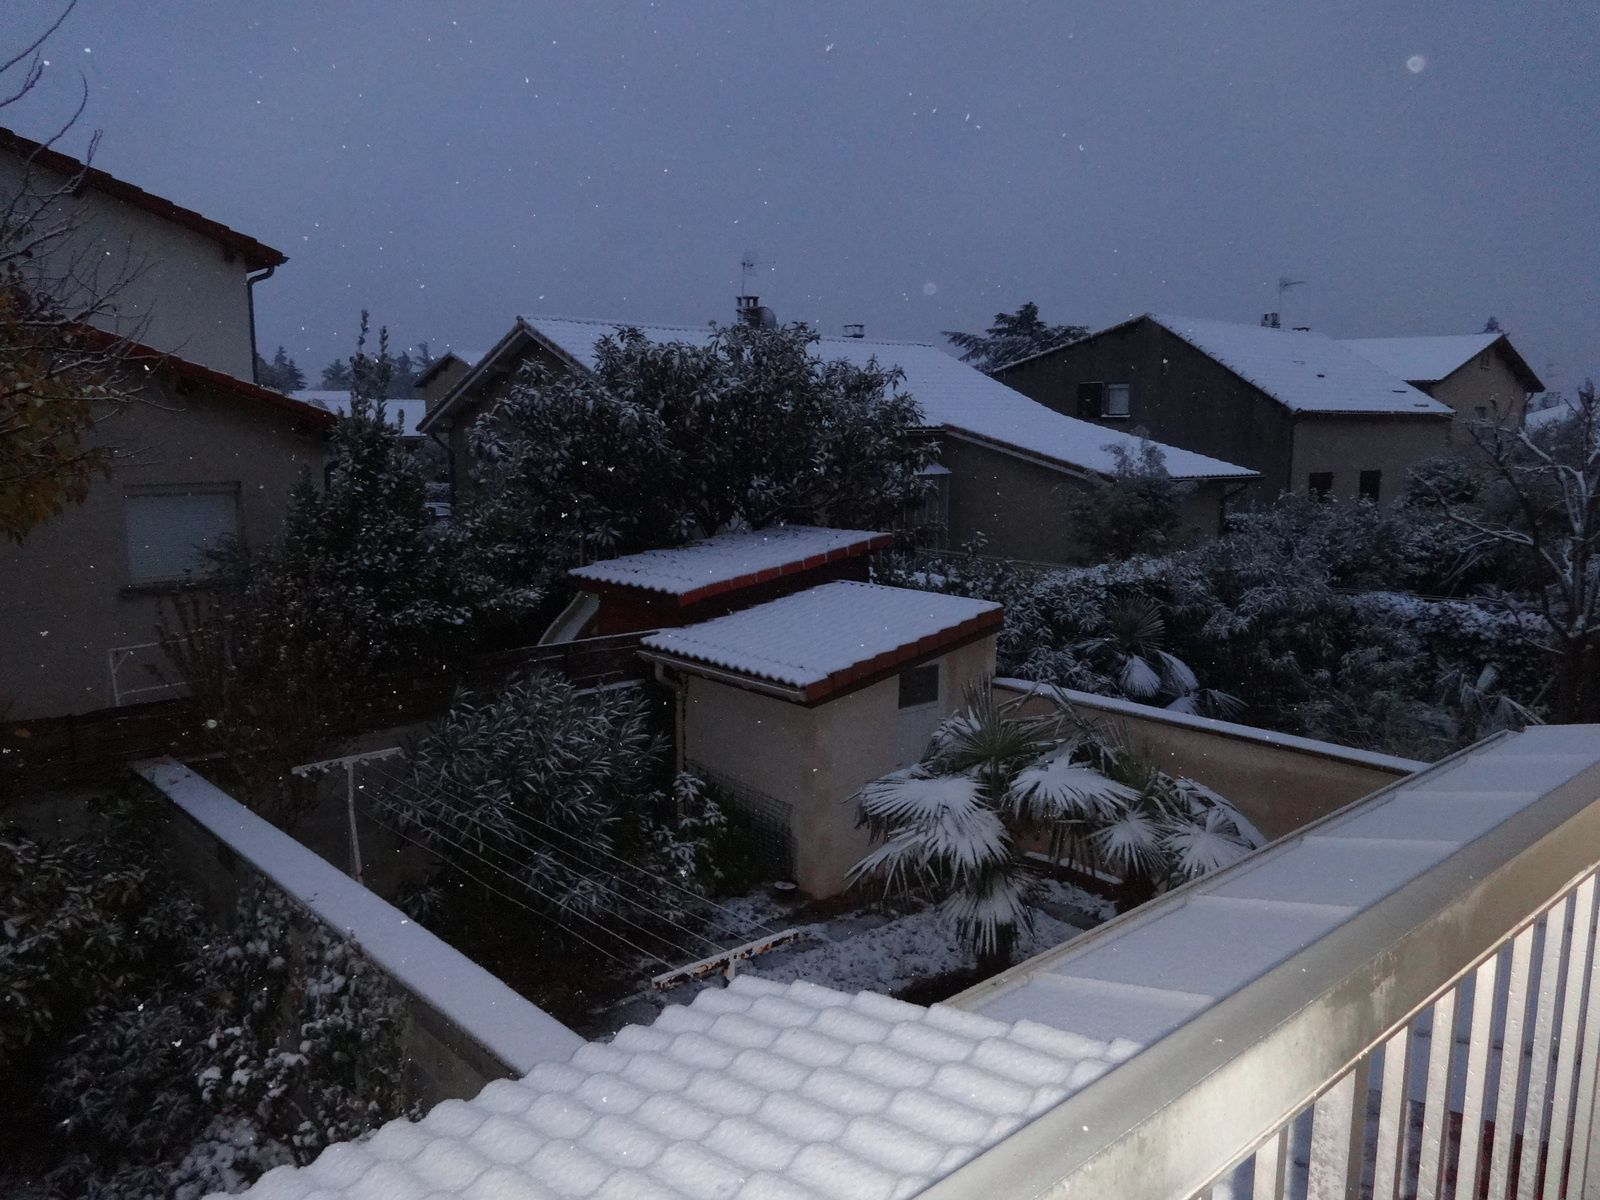 24 heures photo : Oh! Il neige!